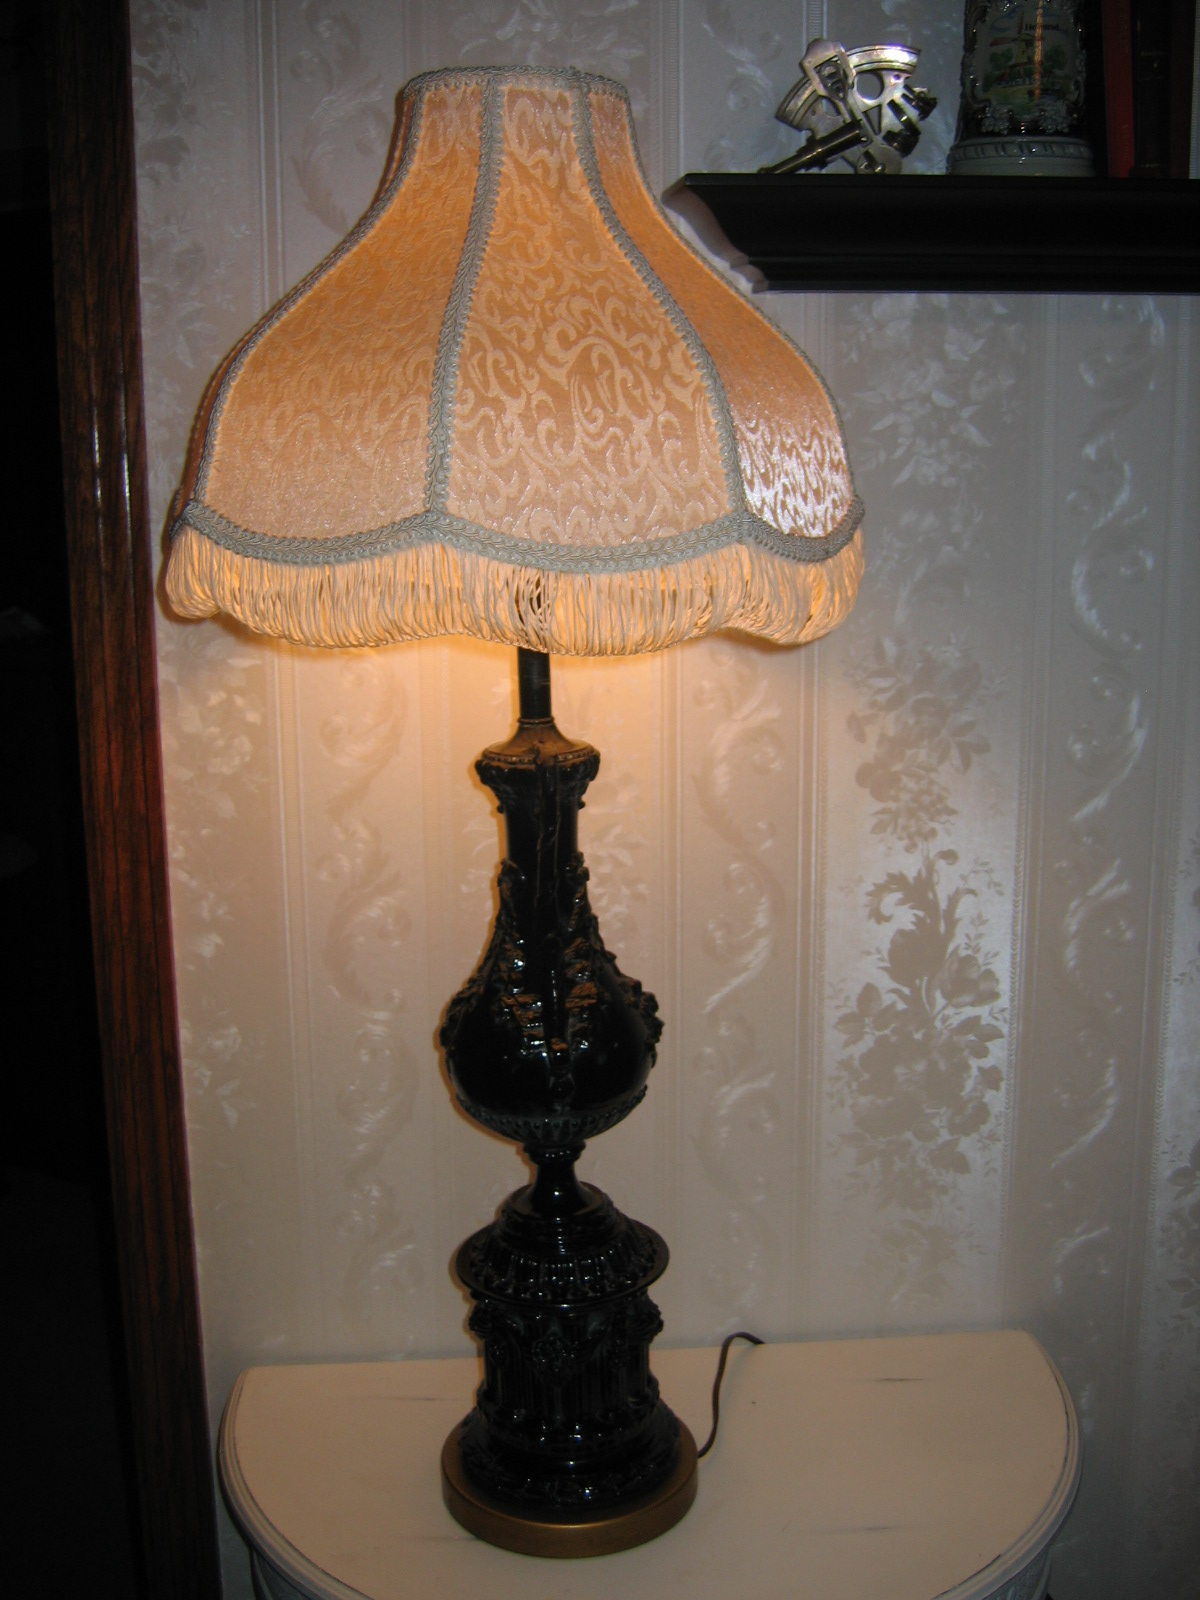 Vintage victorian two handle glass entry side table lamp lighting vintage victorian two handle glass entry side table lamp lighting item 760 for sale antiques classifieds aloadofball Image collections